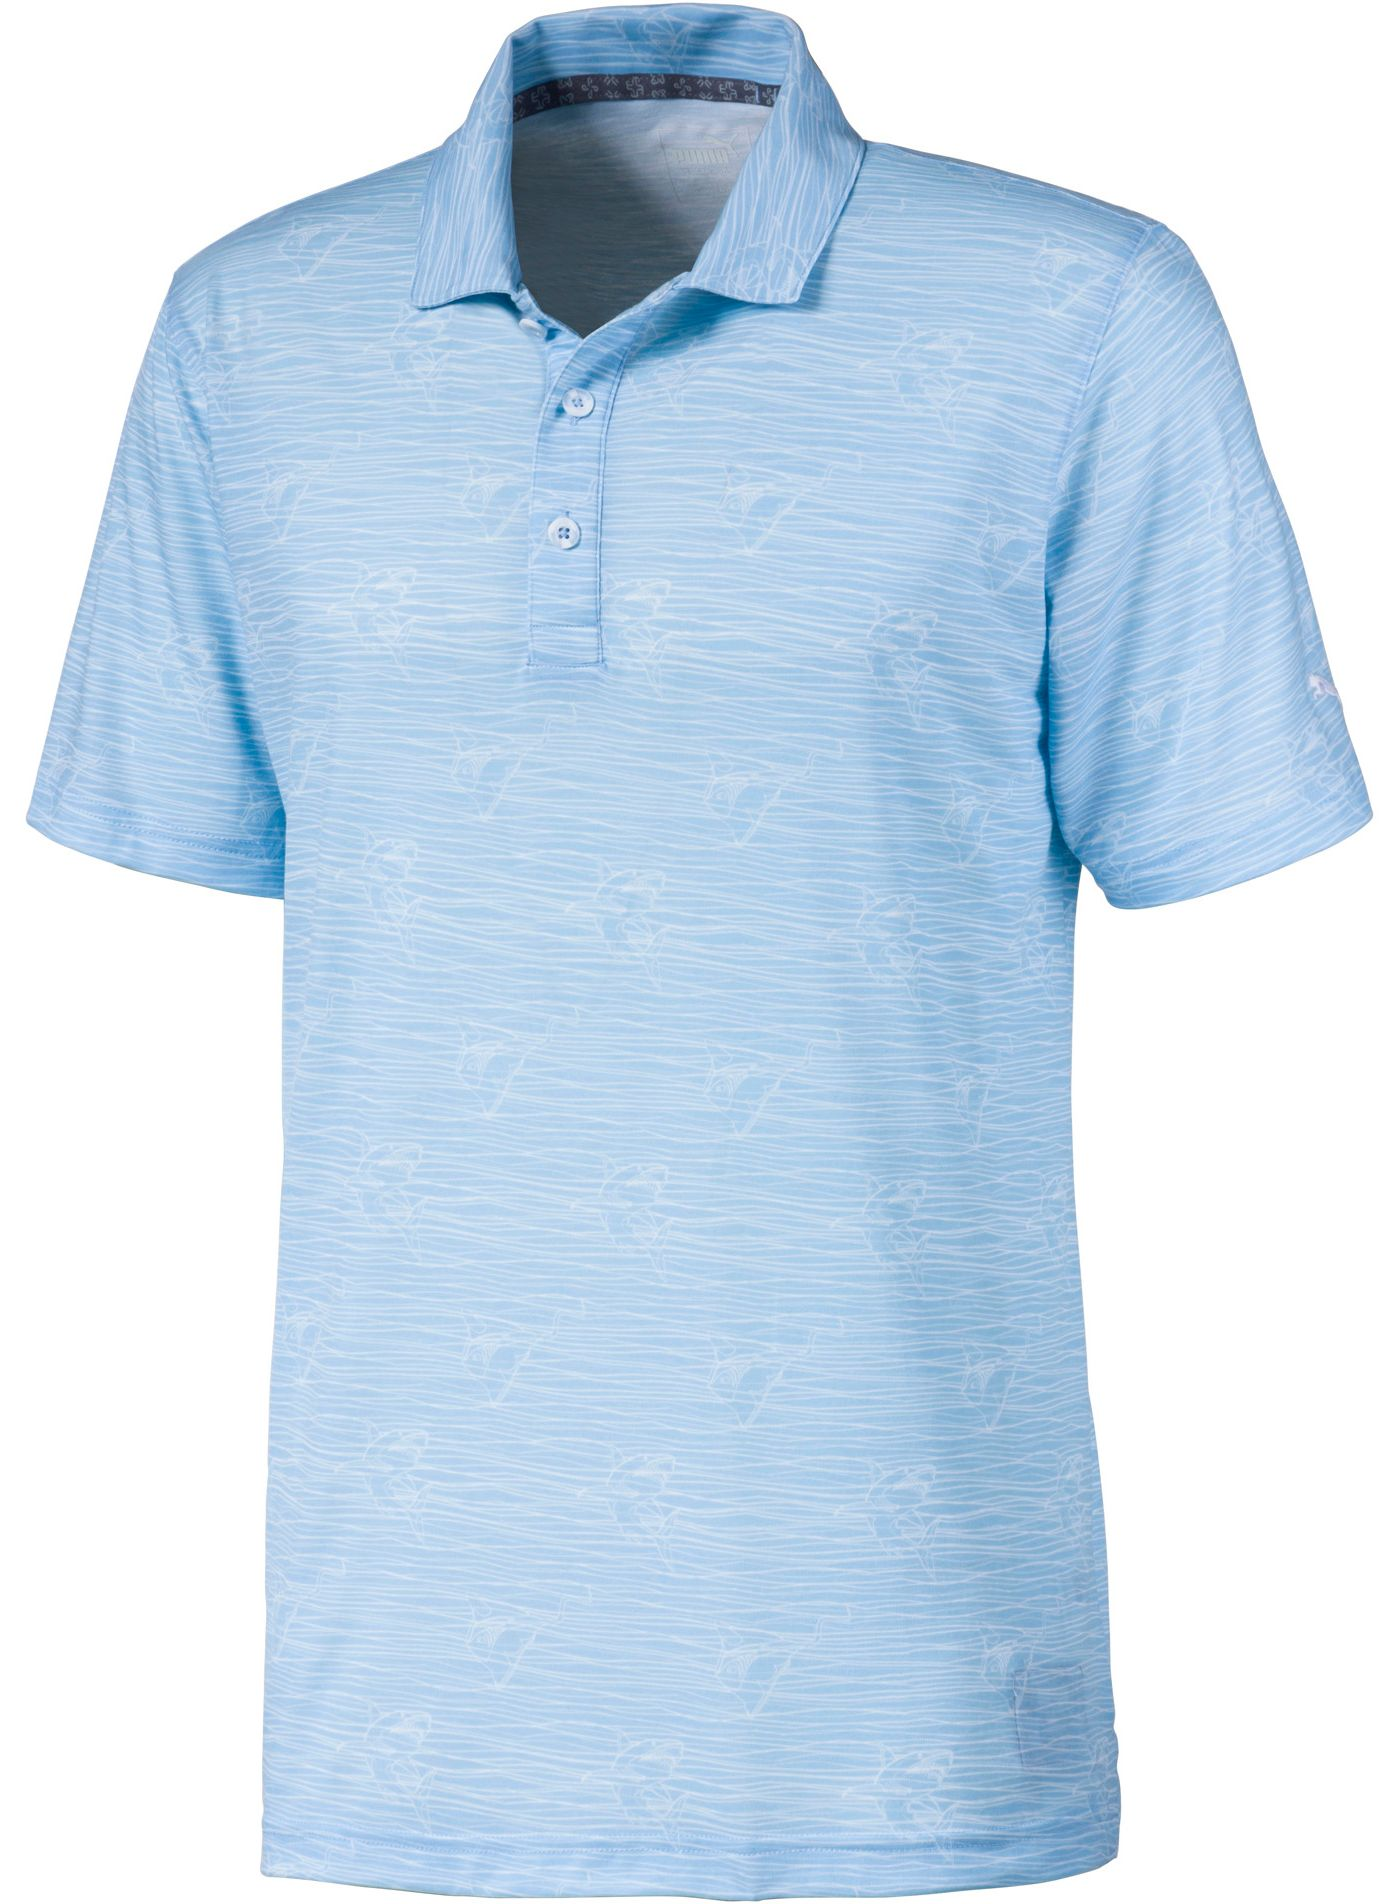 PUMA Men's Predators Golf Polo